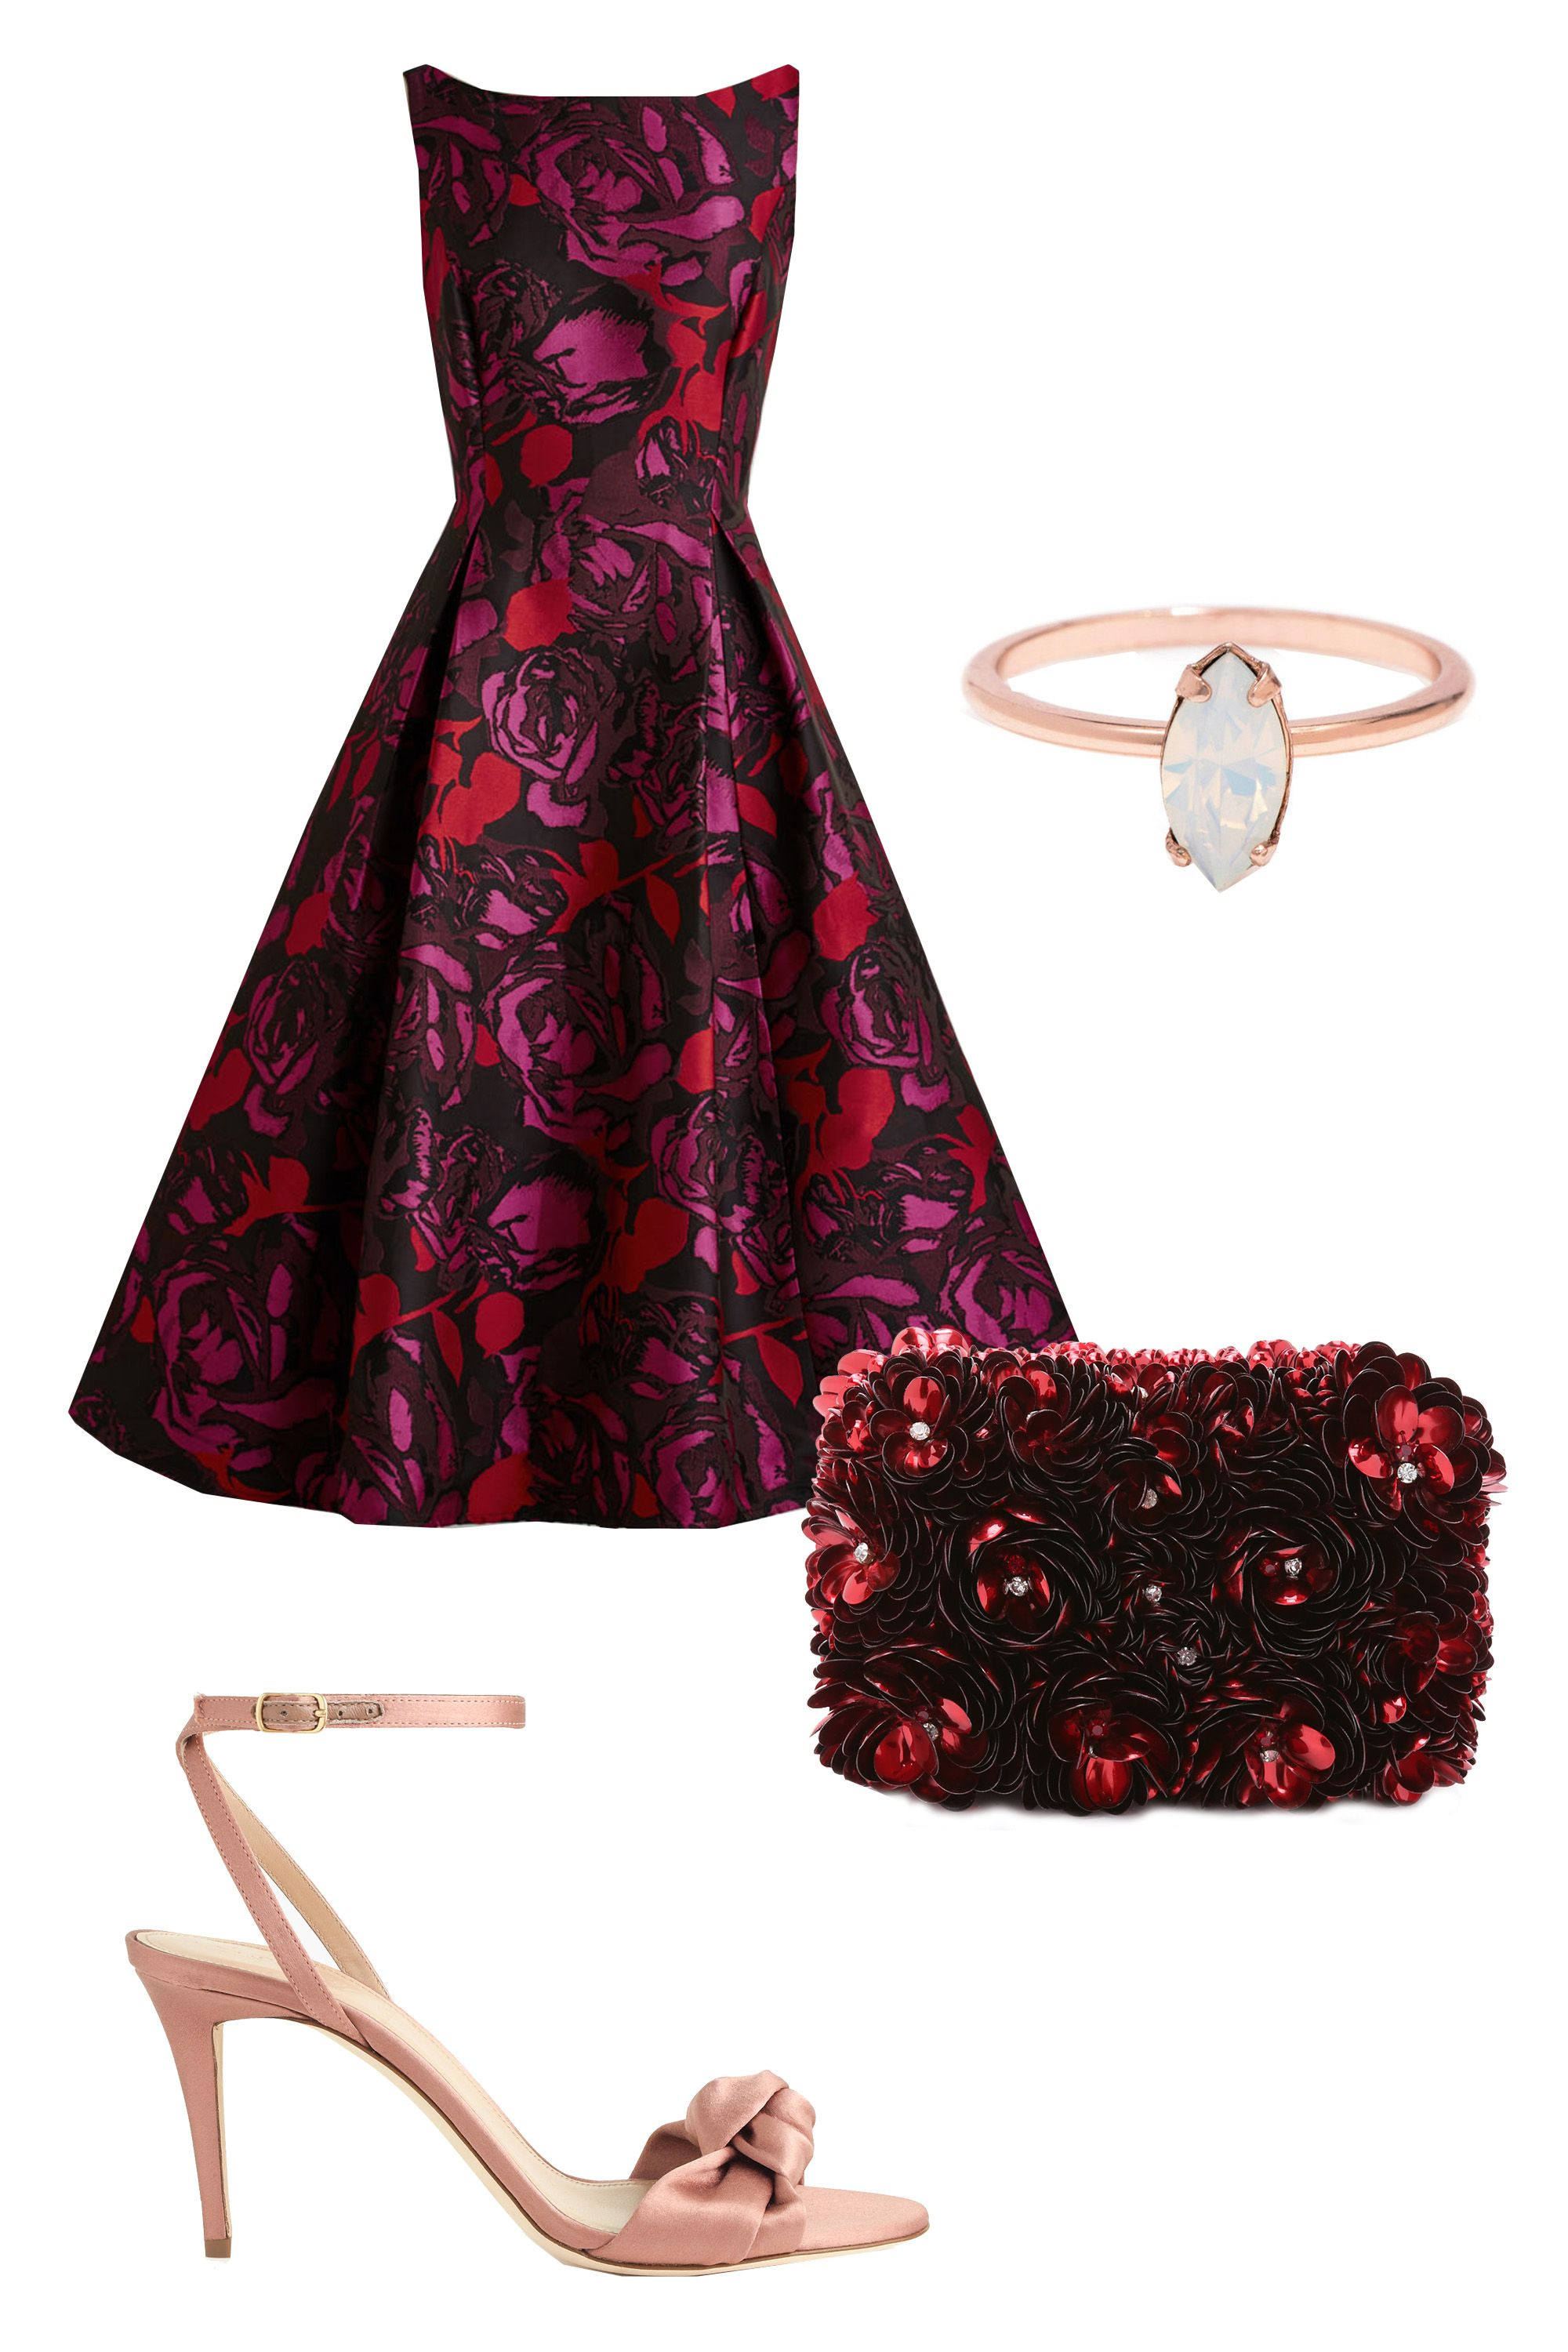 """<p>A retro-inspired dress is enough of a statement piece at a work event, so tone things down with simple rose gold accessories. If you <em>have</em> to add some oomph, a textured clutch in a matching colorway will do the trick.</p><p>Mod Cloth Uptown Twirl Dress, $230; <u><a href=""""http://www.modcloth.com/shop/dresses/uptown-twirl-dress"""" target=""""_blank"""">modcloth.com</a></u><br></p><p>Alice & Olivia Rose Shard Clutch, $297; <a href=""""https://www.shopbop.com/rose-shard-clutch-alice-olivia/vp/v=1/1554232445.htm?folderID=2534374302055387&fm=other-shopbysize-viewall&os=false&colorId=34021"""" target=""""_blank""""><u>shopbop.com</u></a></p><p>Bing Bang NYC Tiny Marquis Ring, $70; <a href=""""http://www.bingbangnyc.com/collections/rings/products/tiny-marquis-ring-opal"""" target=""""_blank""""><u>bingbangnyc.com</u></a></p><p>J. Crew Satin Bow High-Heel Sandals, $220; <a href=""""https://www.jcrew.com/womens_category/shoes/pumpsandheels/PRDOVR~E1162/E1162.jsp?color_name=burnished-shell"""" target=""""_blank"""">jcrew.com</a><br></p>"""